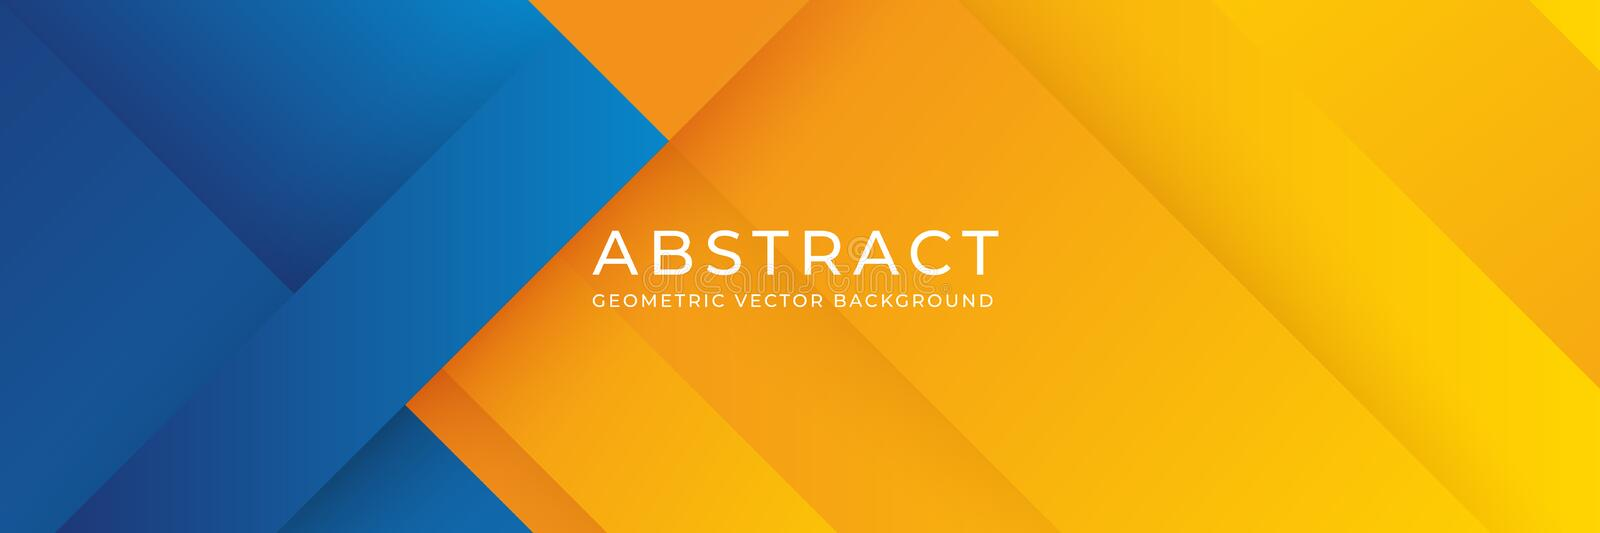 Geometric blue and orange background. Abstract background with blue and orange gradient composition. Eps 10 vector background stock illustration